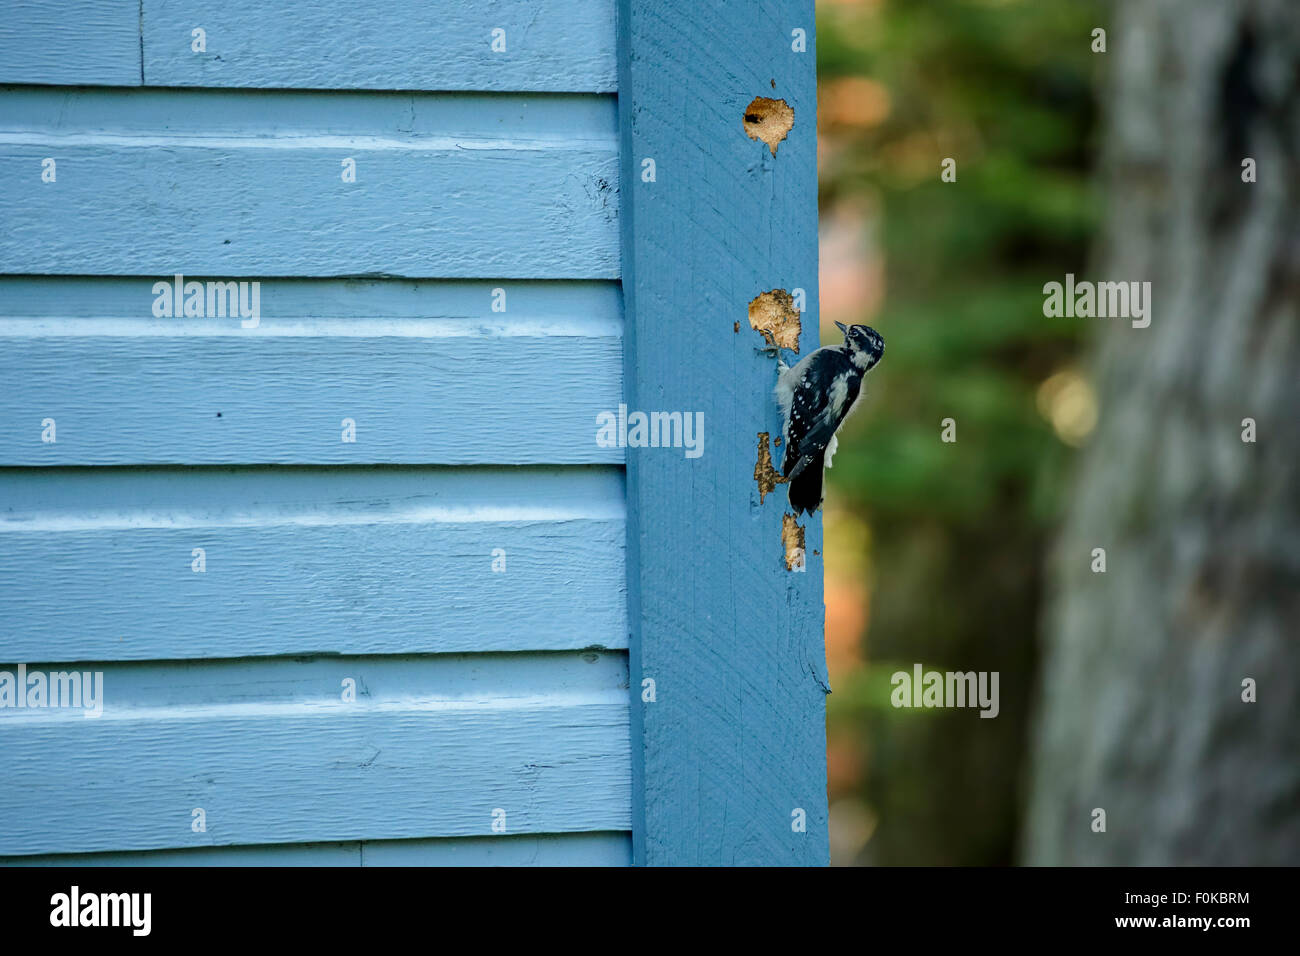 Downy  woodpecker creating hole in townhouse wood siding-Victoria, British Columbia, Canada. - Stock Image